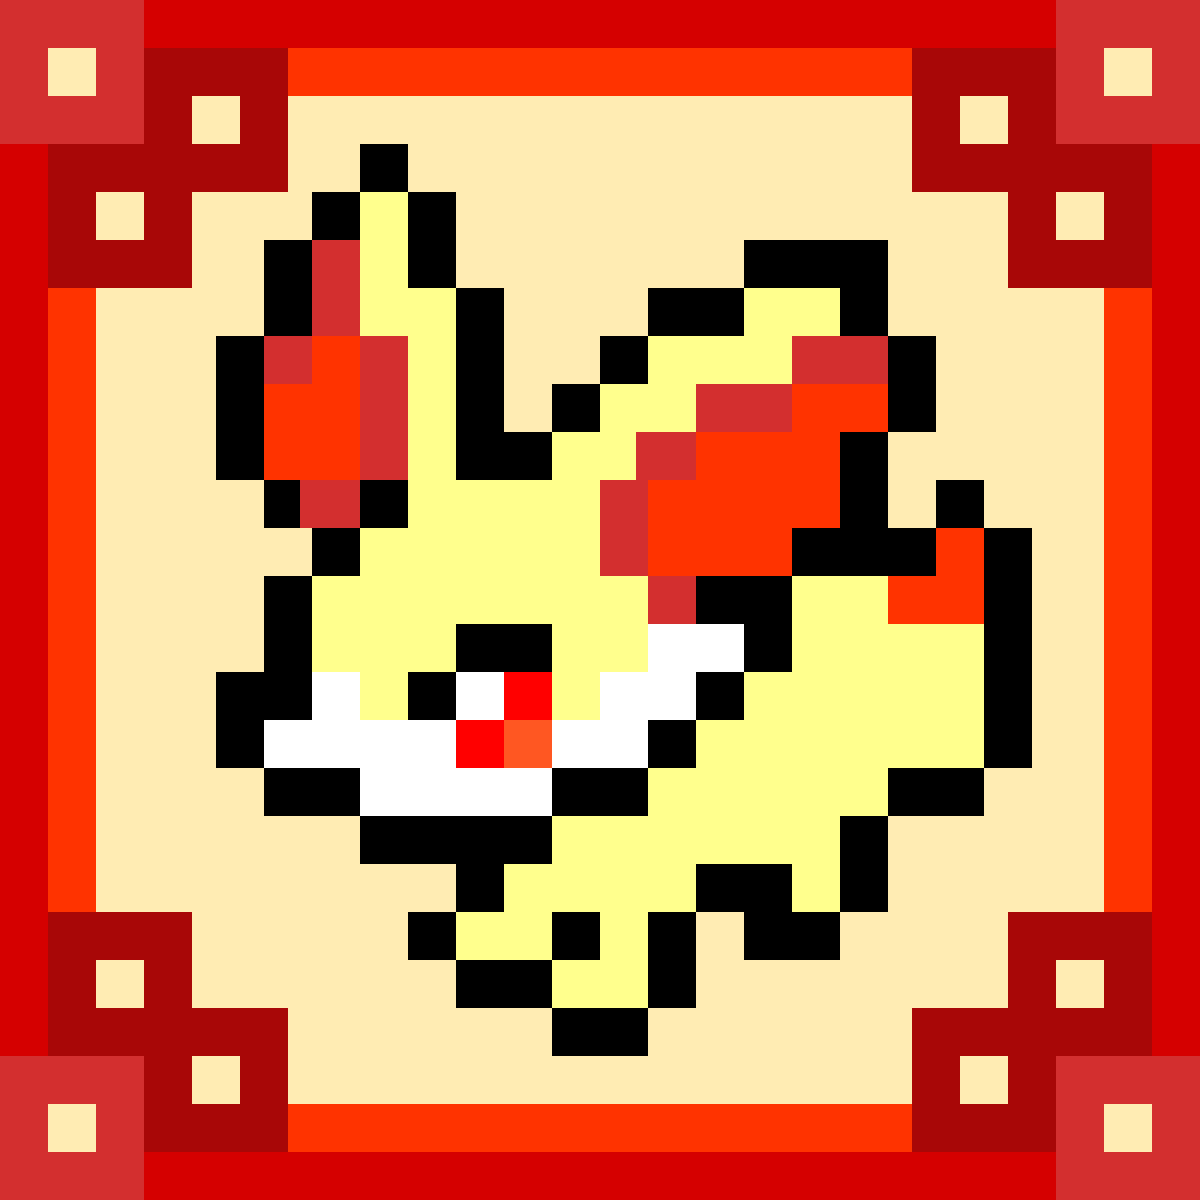 Pixilart Pokemon Fennekin By Sunstar Pokemon